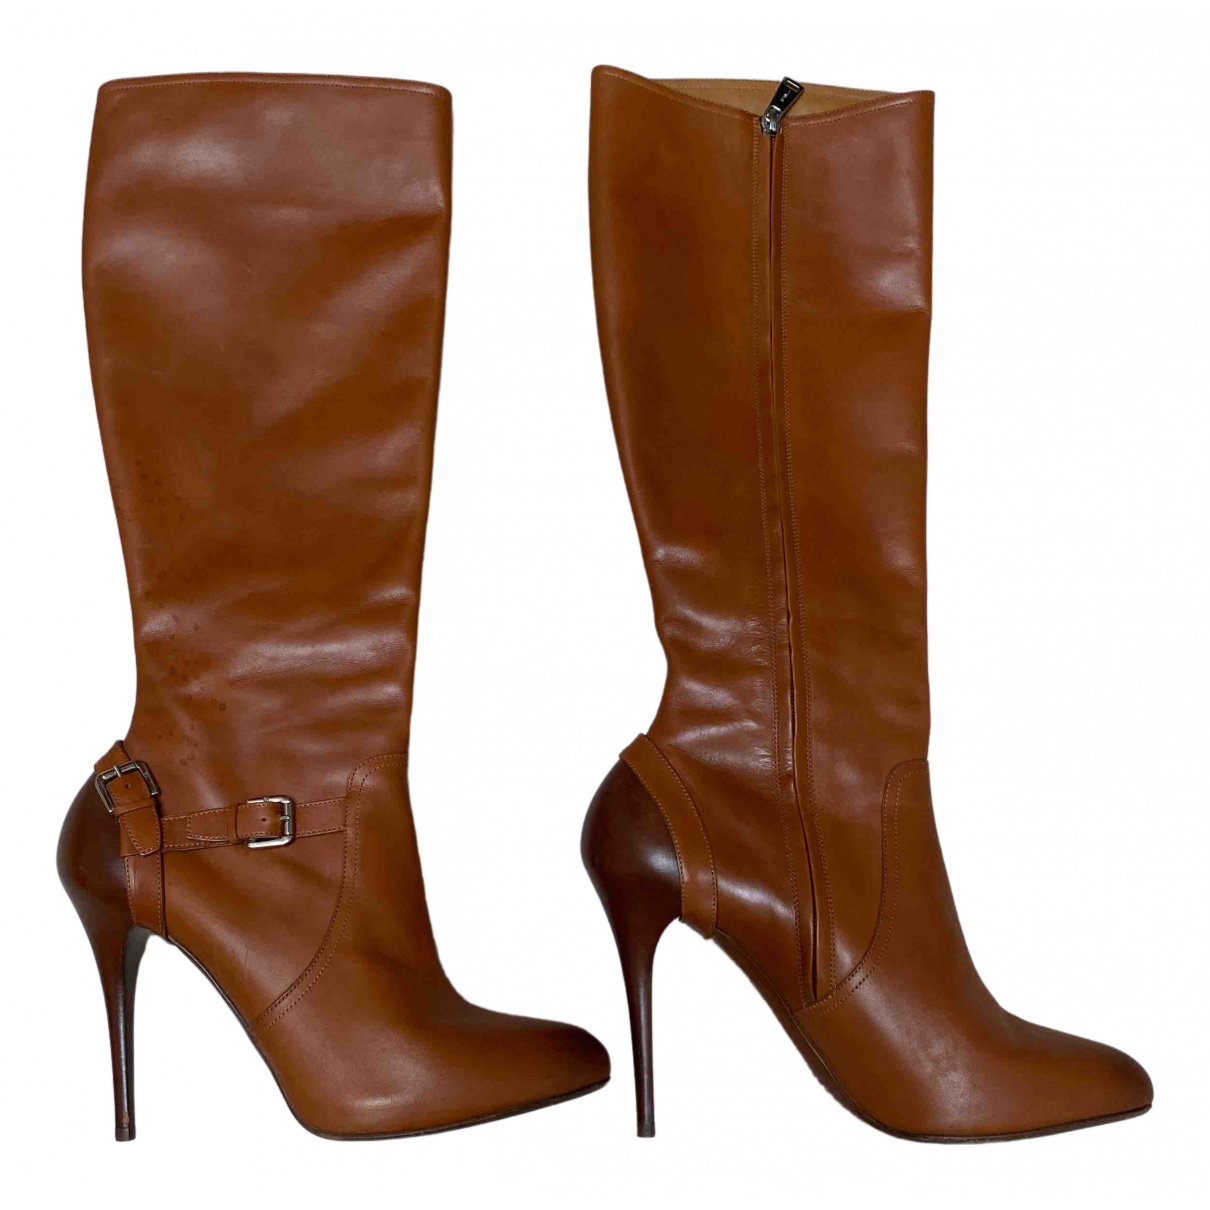 Ralph Lauren N Brown Leather Boots for Women 10 US